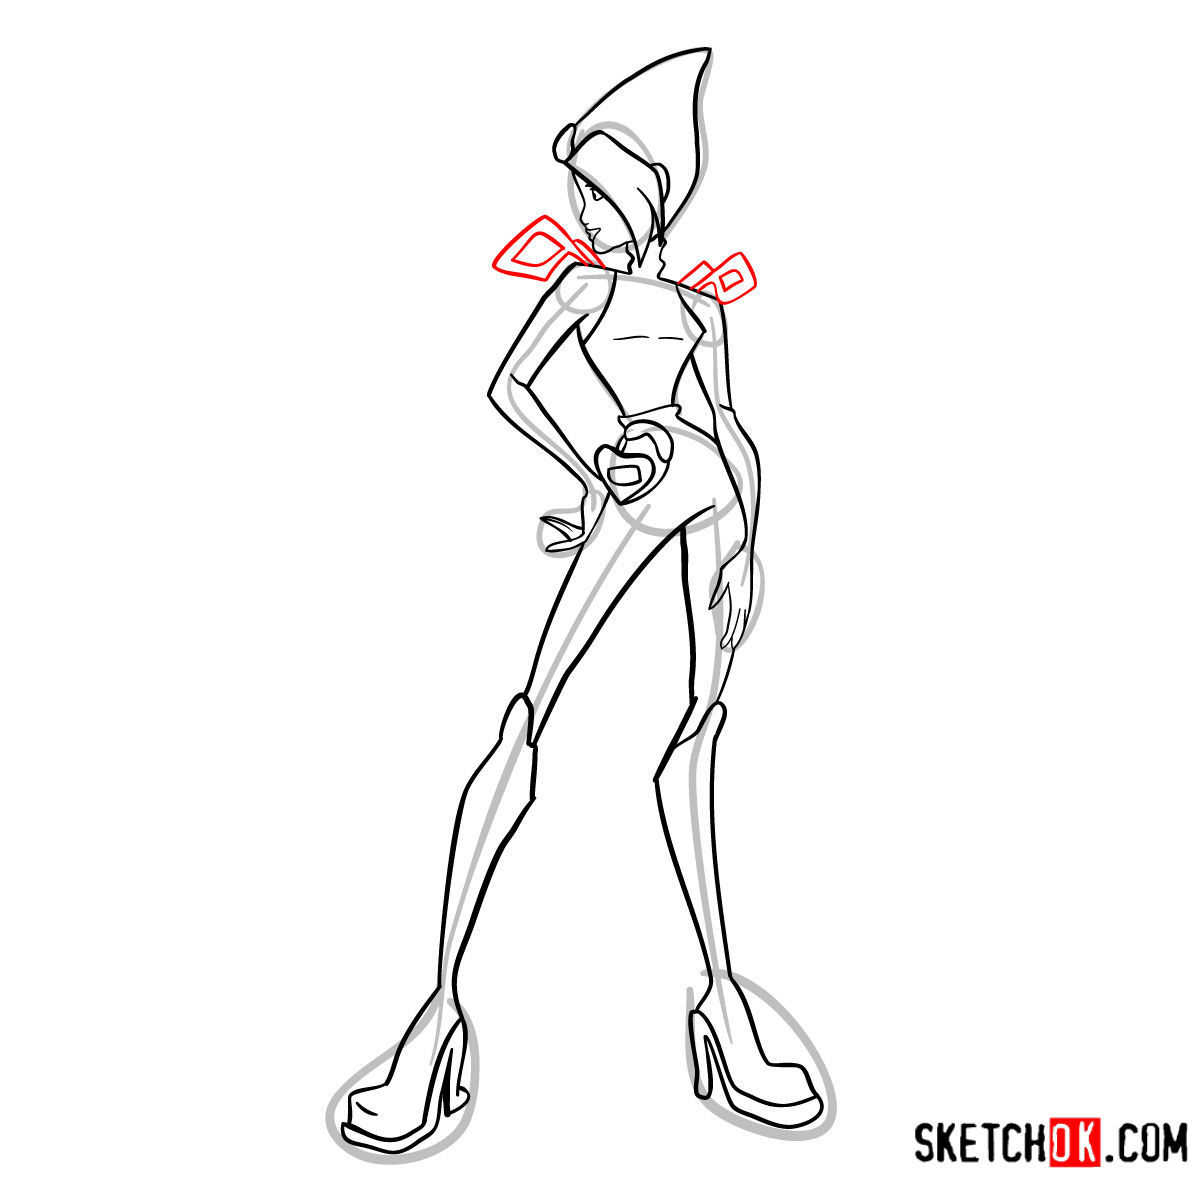 How to draw Tecna Charmix from Winx - step 12